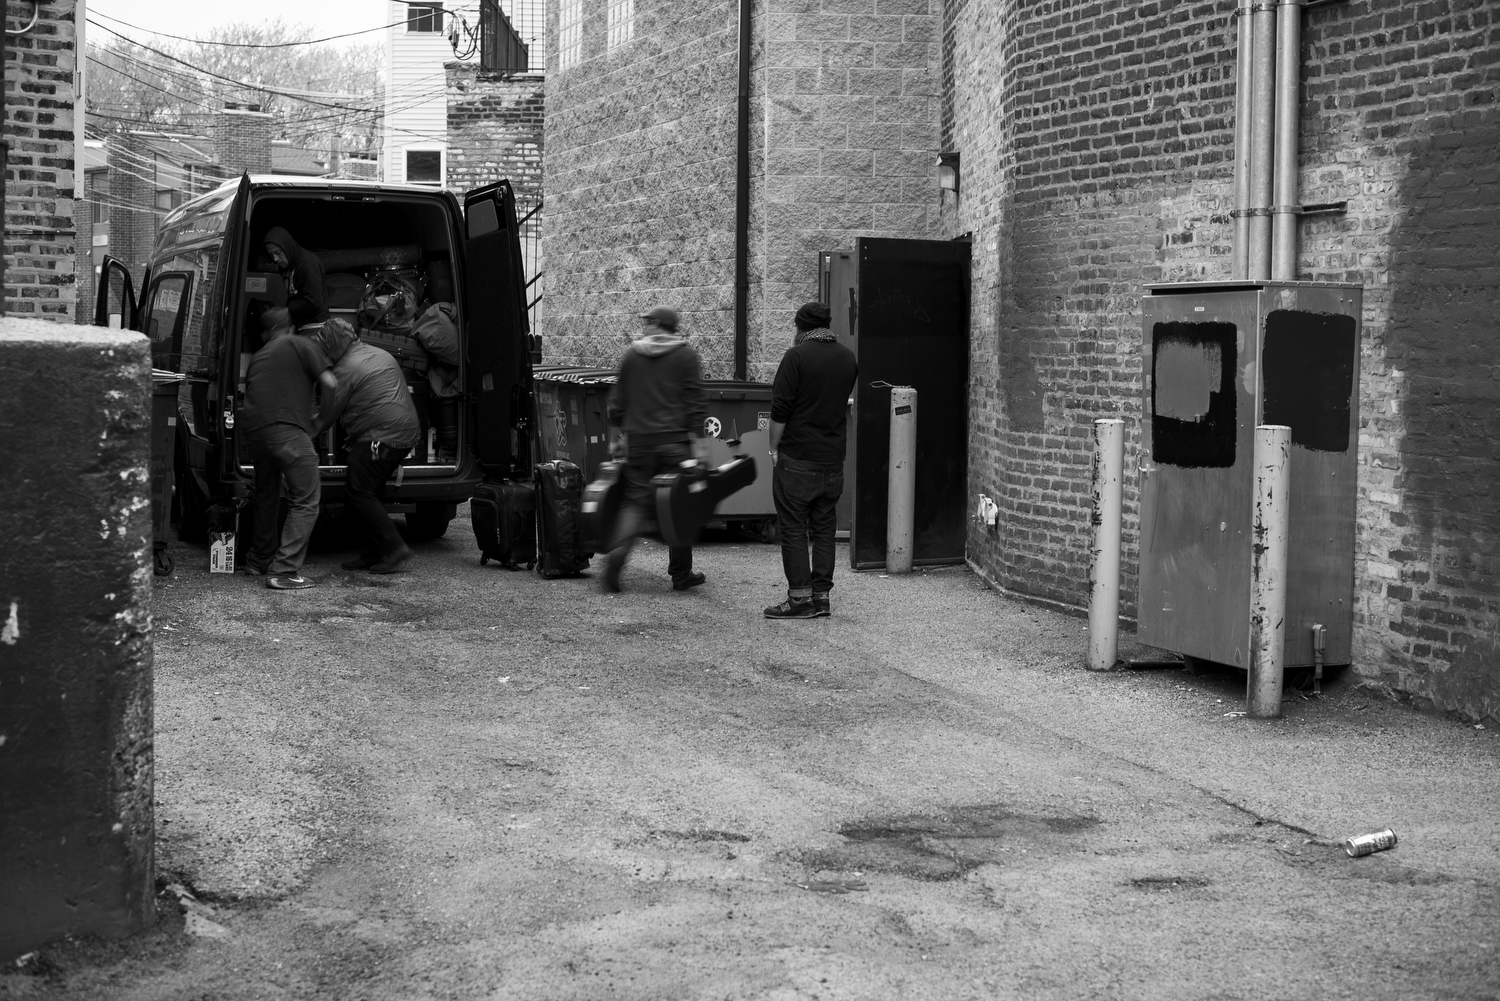 5PM—Loading the van is an art, a game of tetris with drums, guitars, amps, and luggage. Load it wrong and it won't fit, worse, something will break on the drive. Here, the band gets help unloading from venue employees.